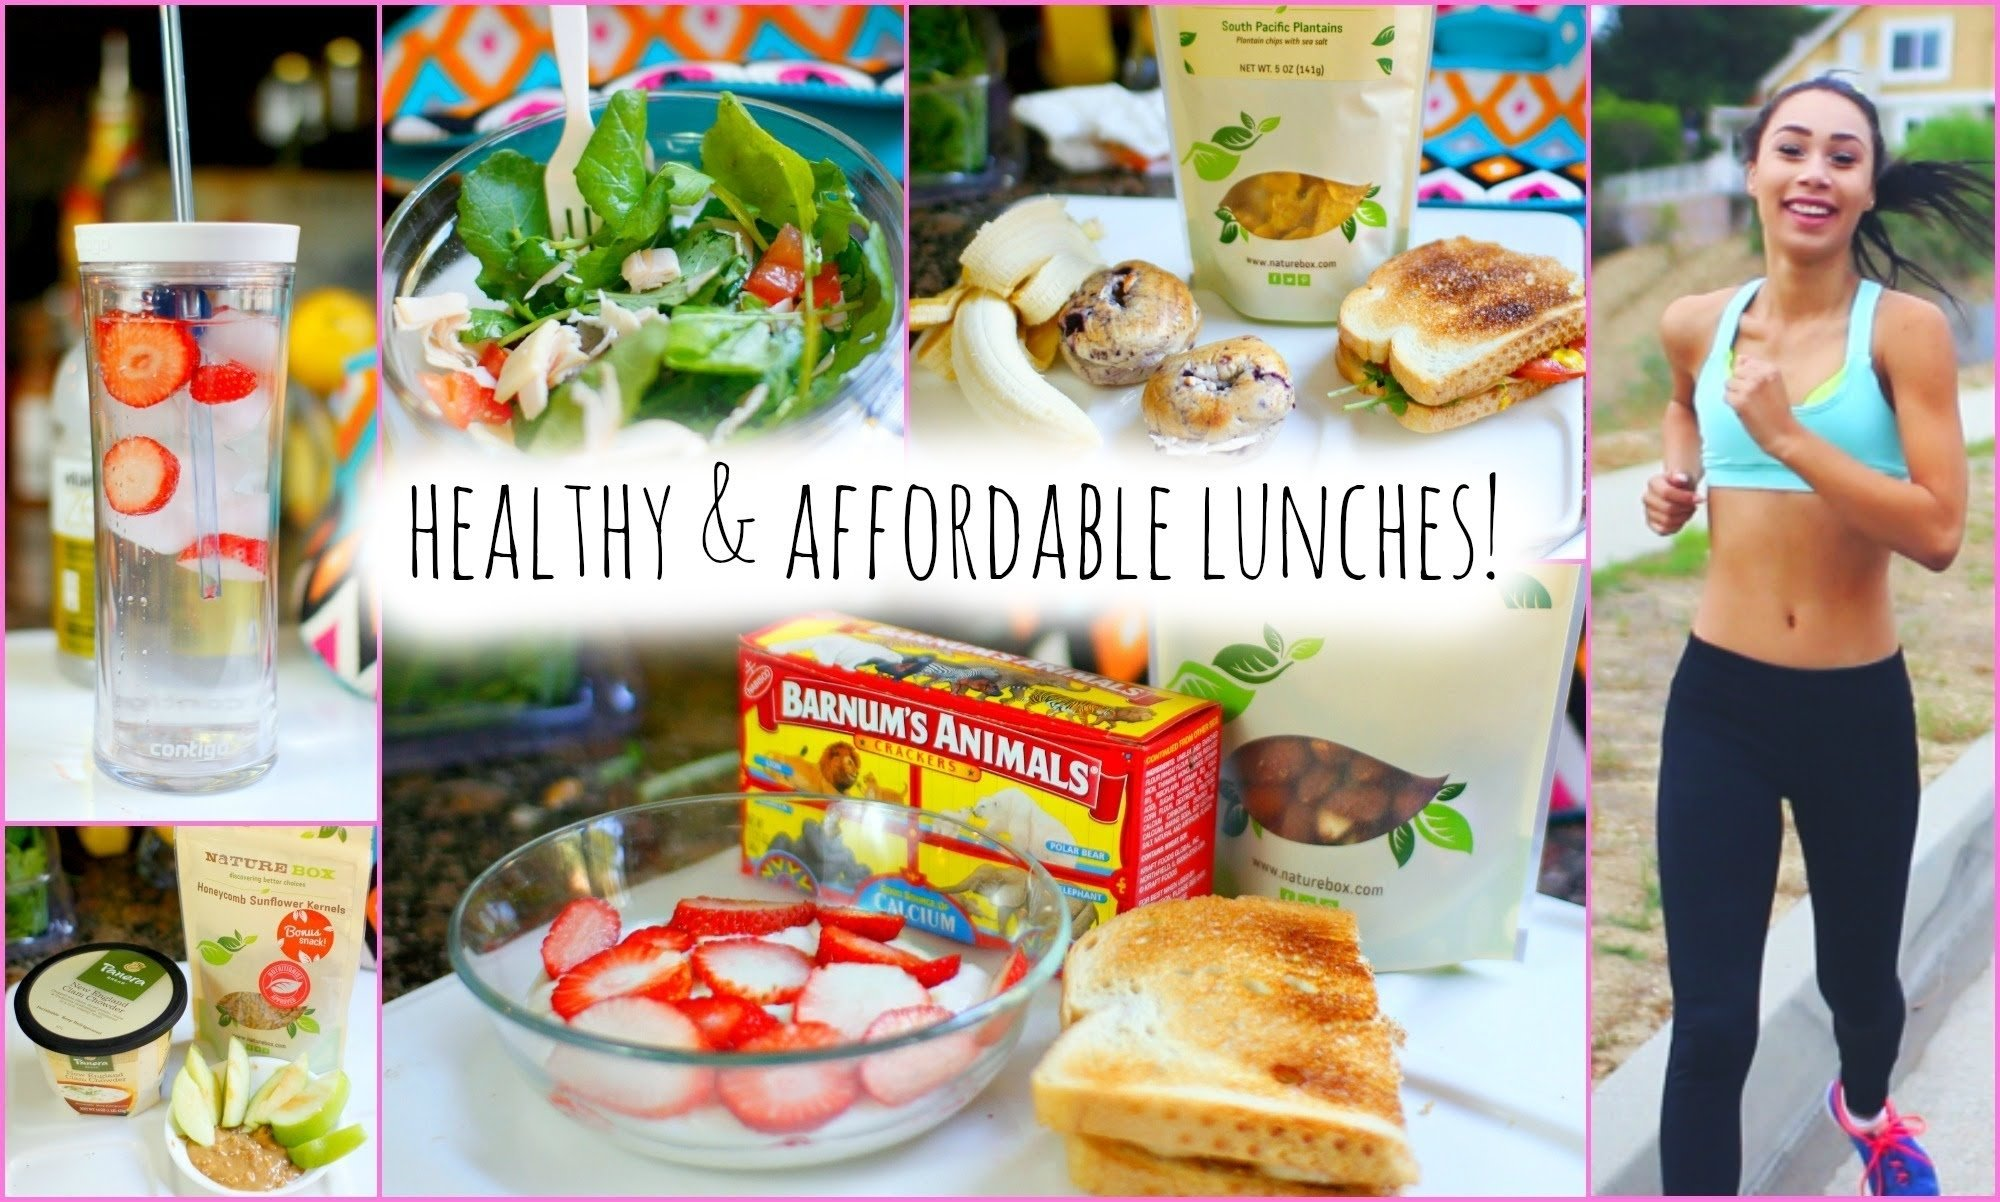 10 Attractive Healthy Breakfast And Lunch Ideas 5 healthy and affordable lunch ideas for school youtube 3 2020